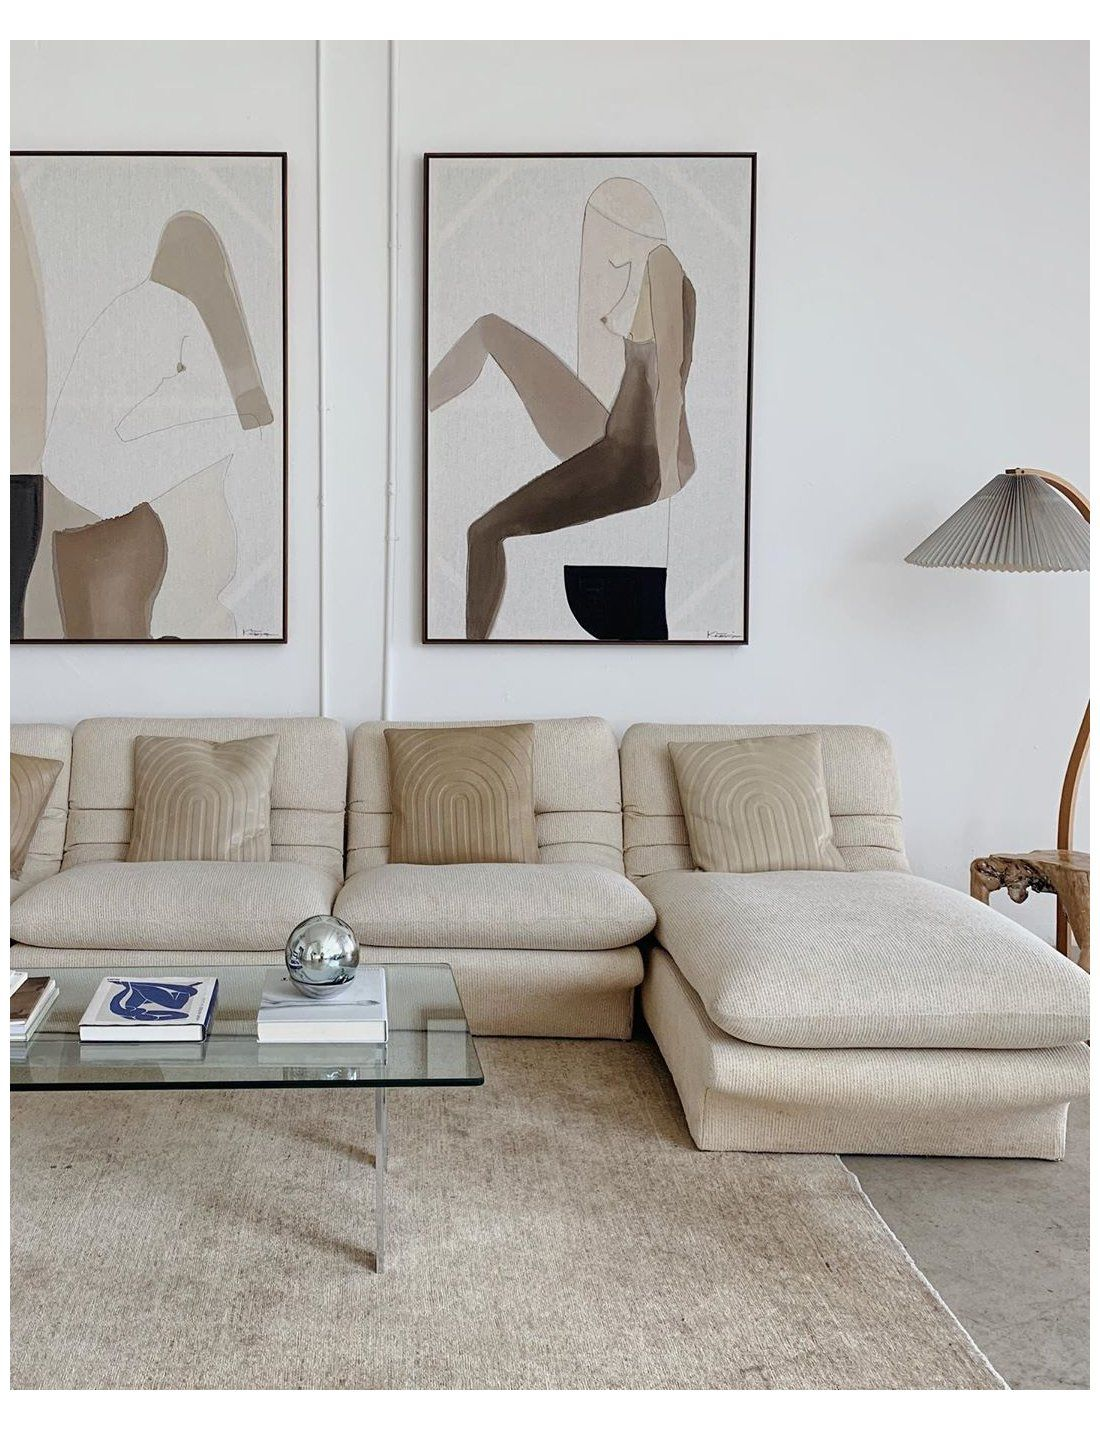 Amazing Ambiances By Top Interior Designers Discover All The Design News On Our Blog Interieurdesig 115 In 2020 Home Decor Minimalism Interior Living Room Decor